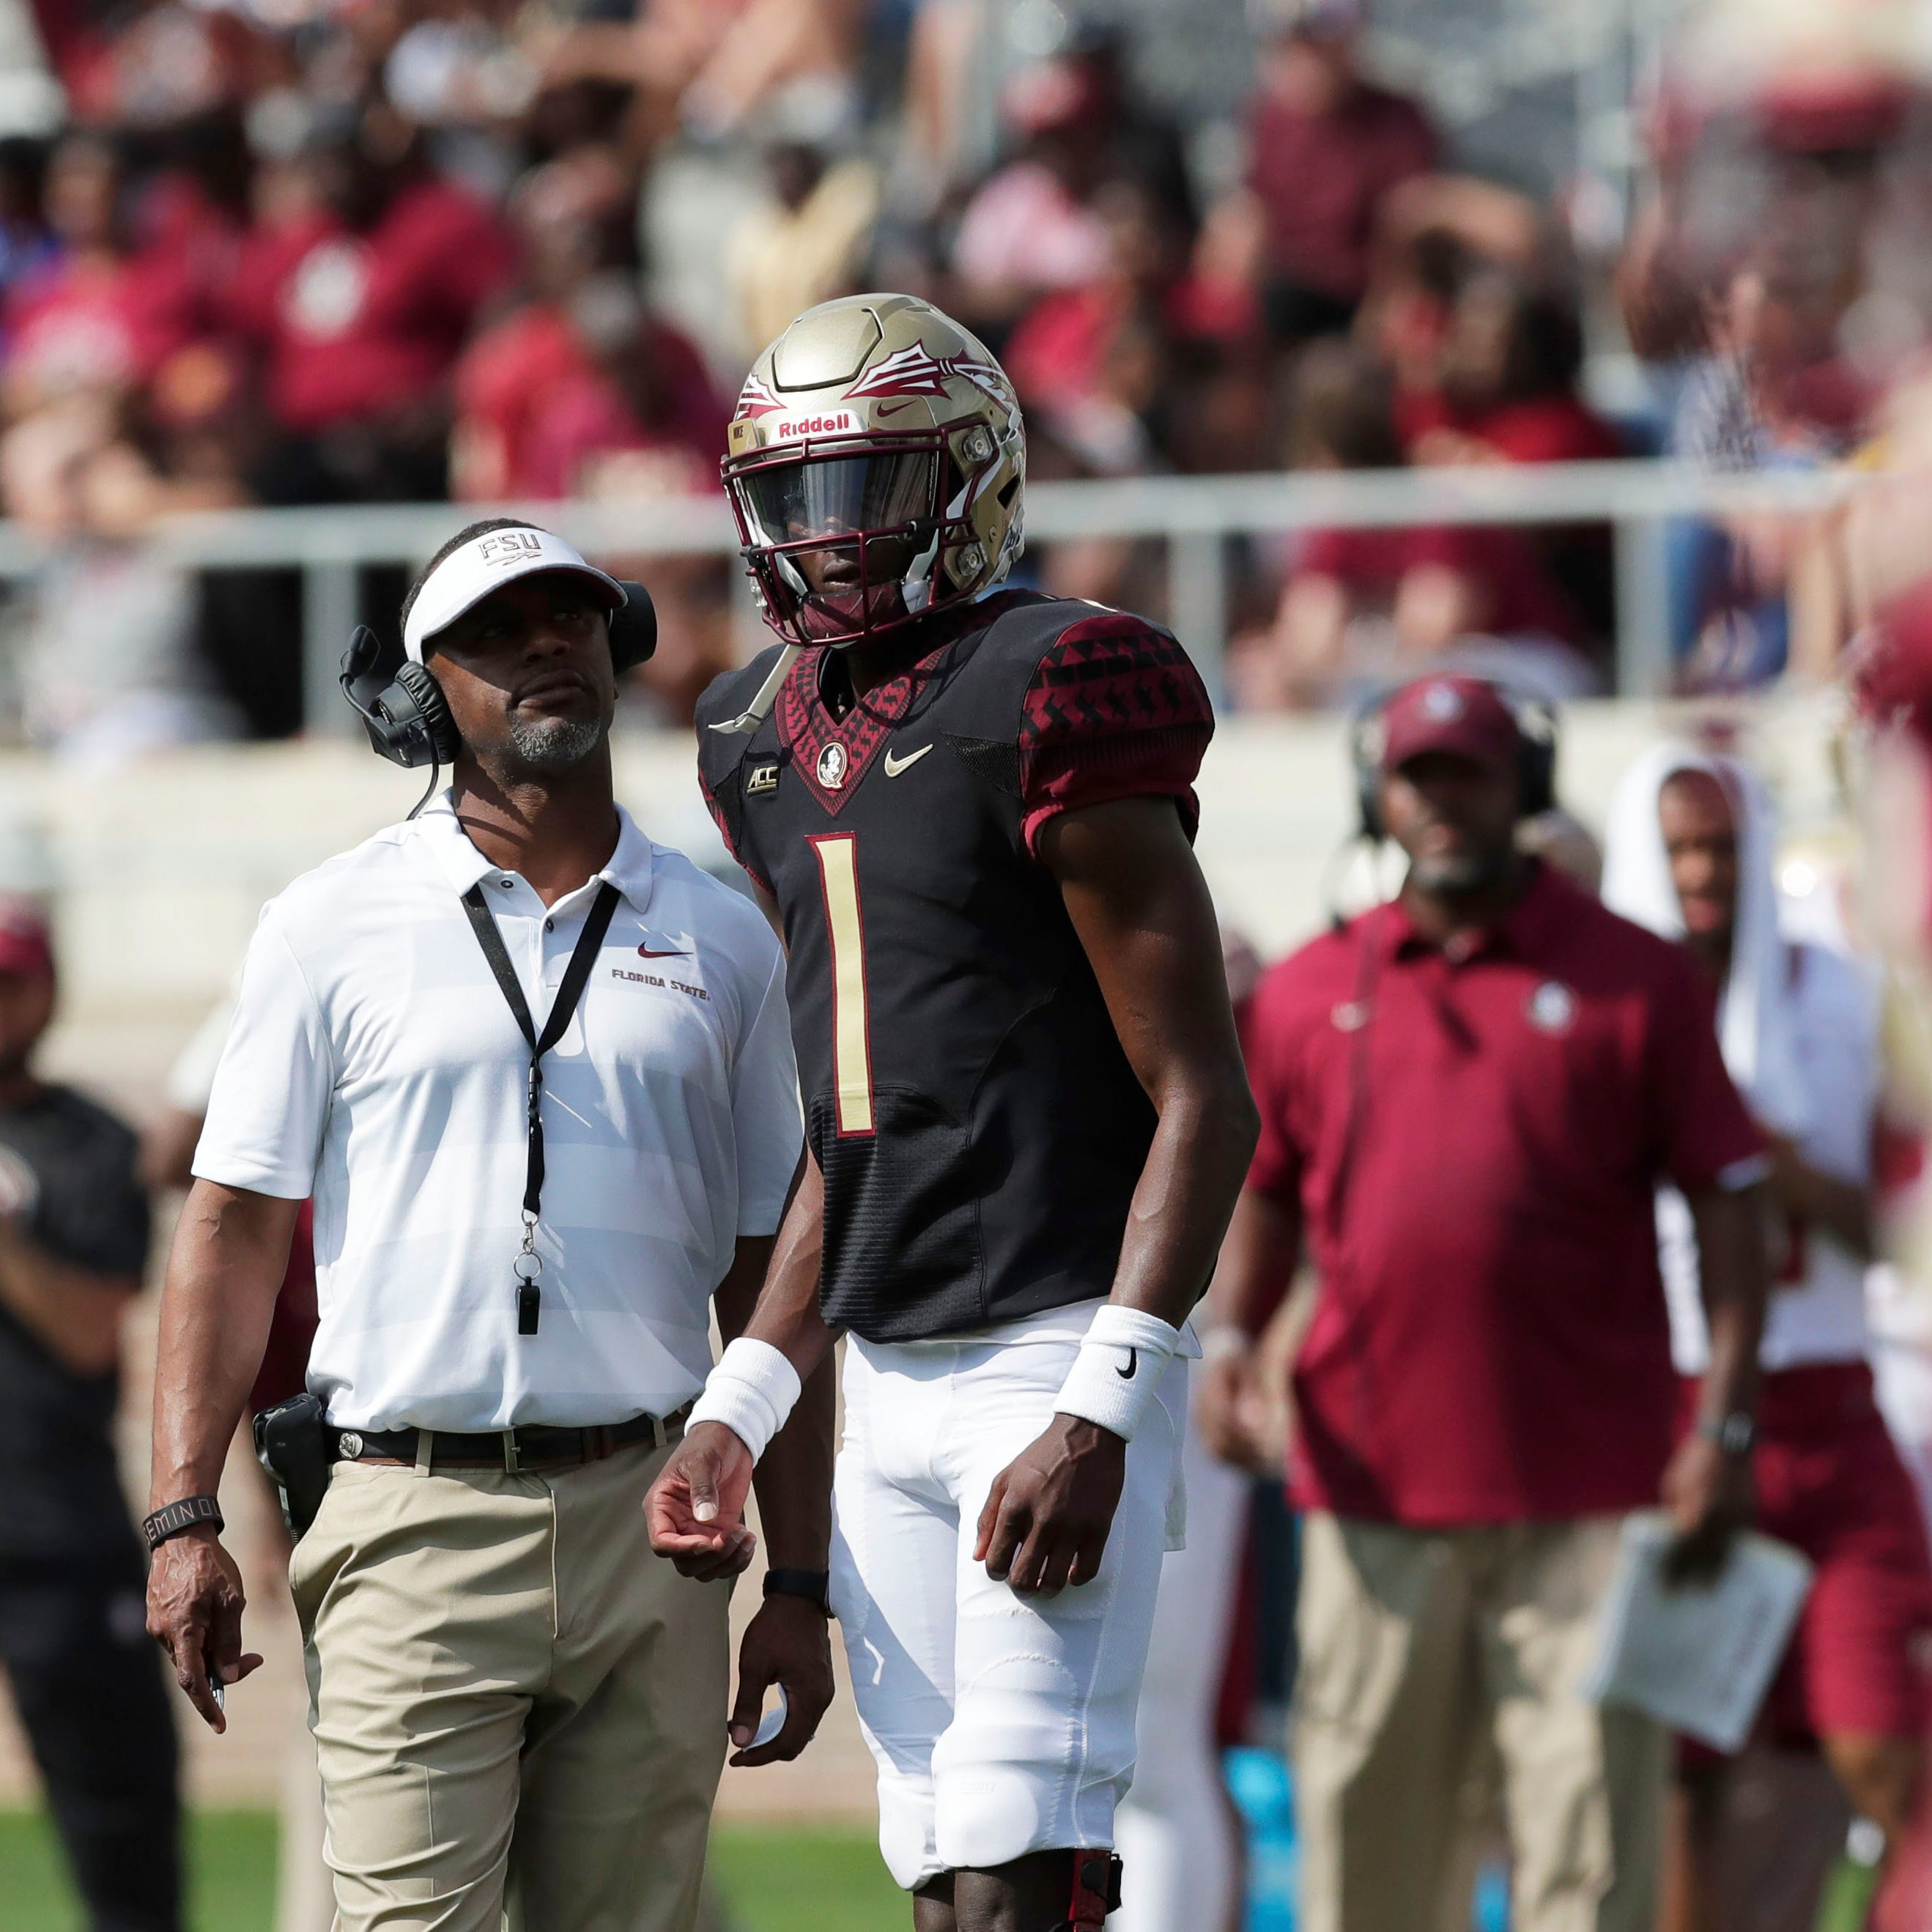 Game time announced for Florida State's 2019 season opener against Boise State